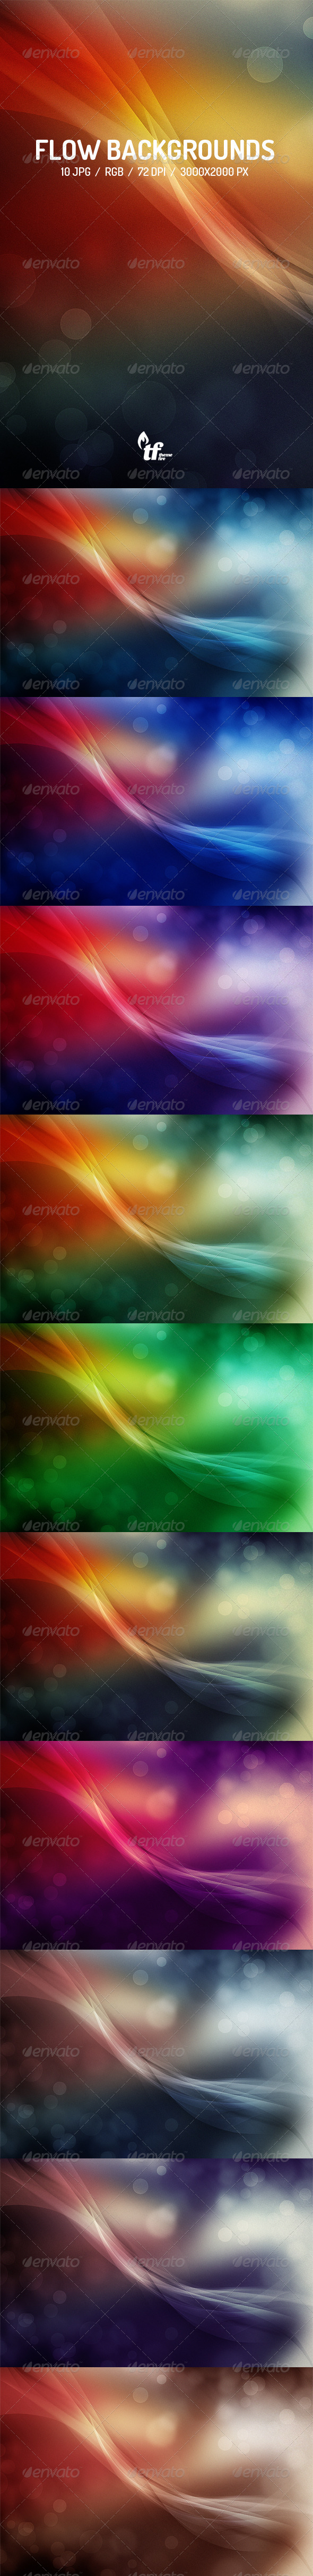 GraphicRiver Flow Backgrounds 7714343